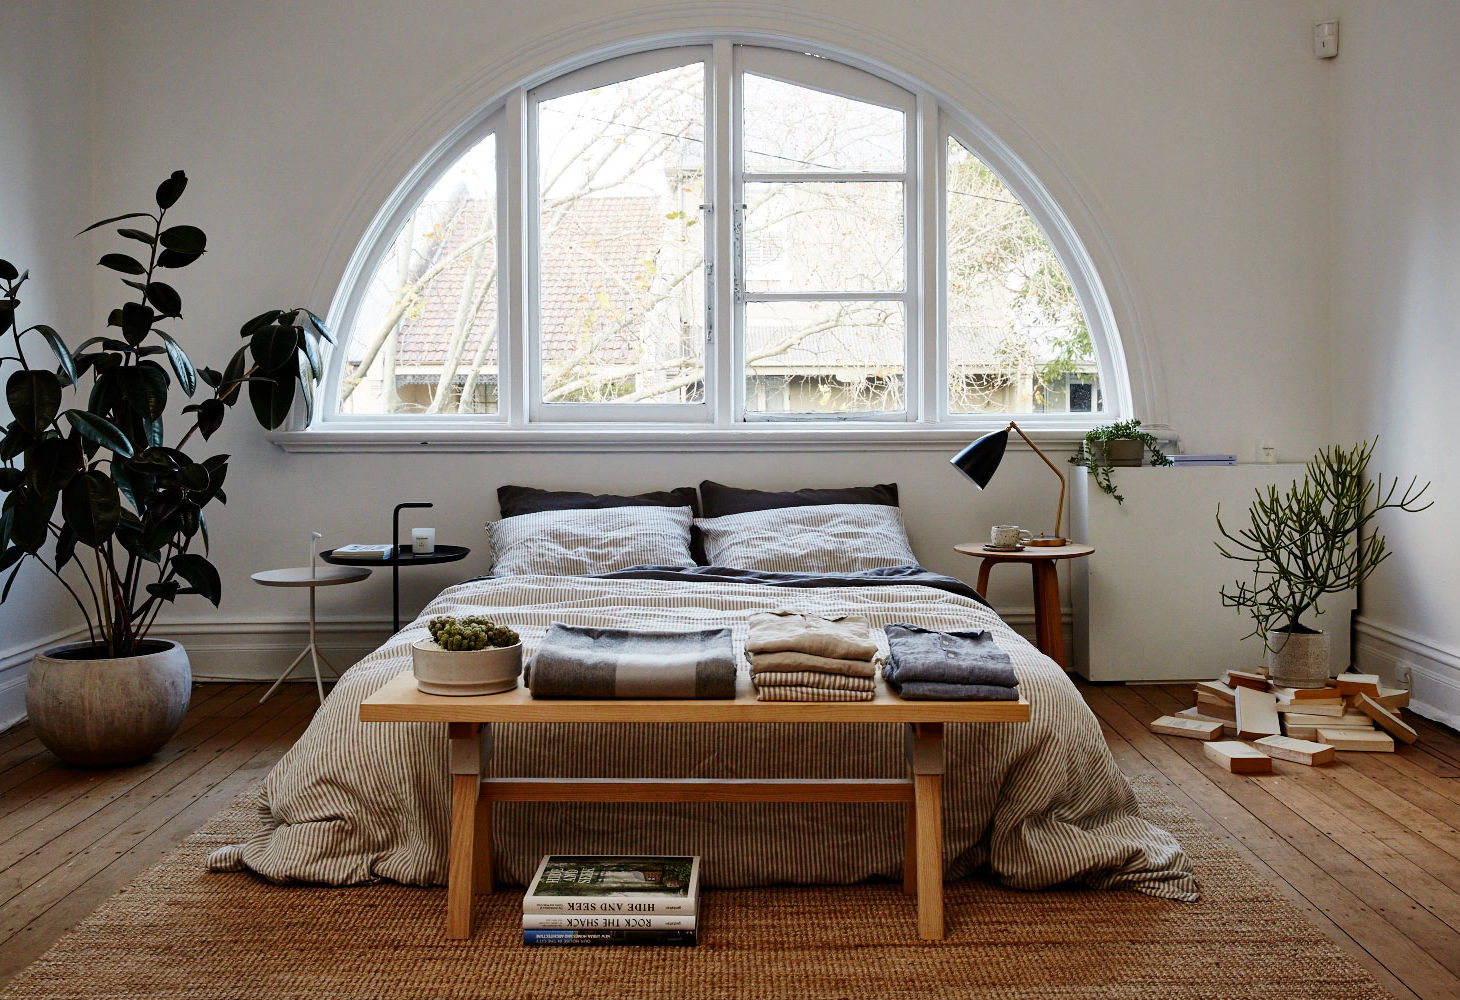 linen bedding in the IN BED pop up